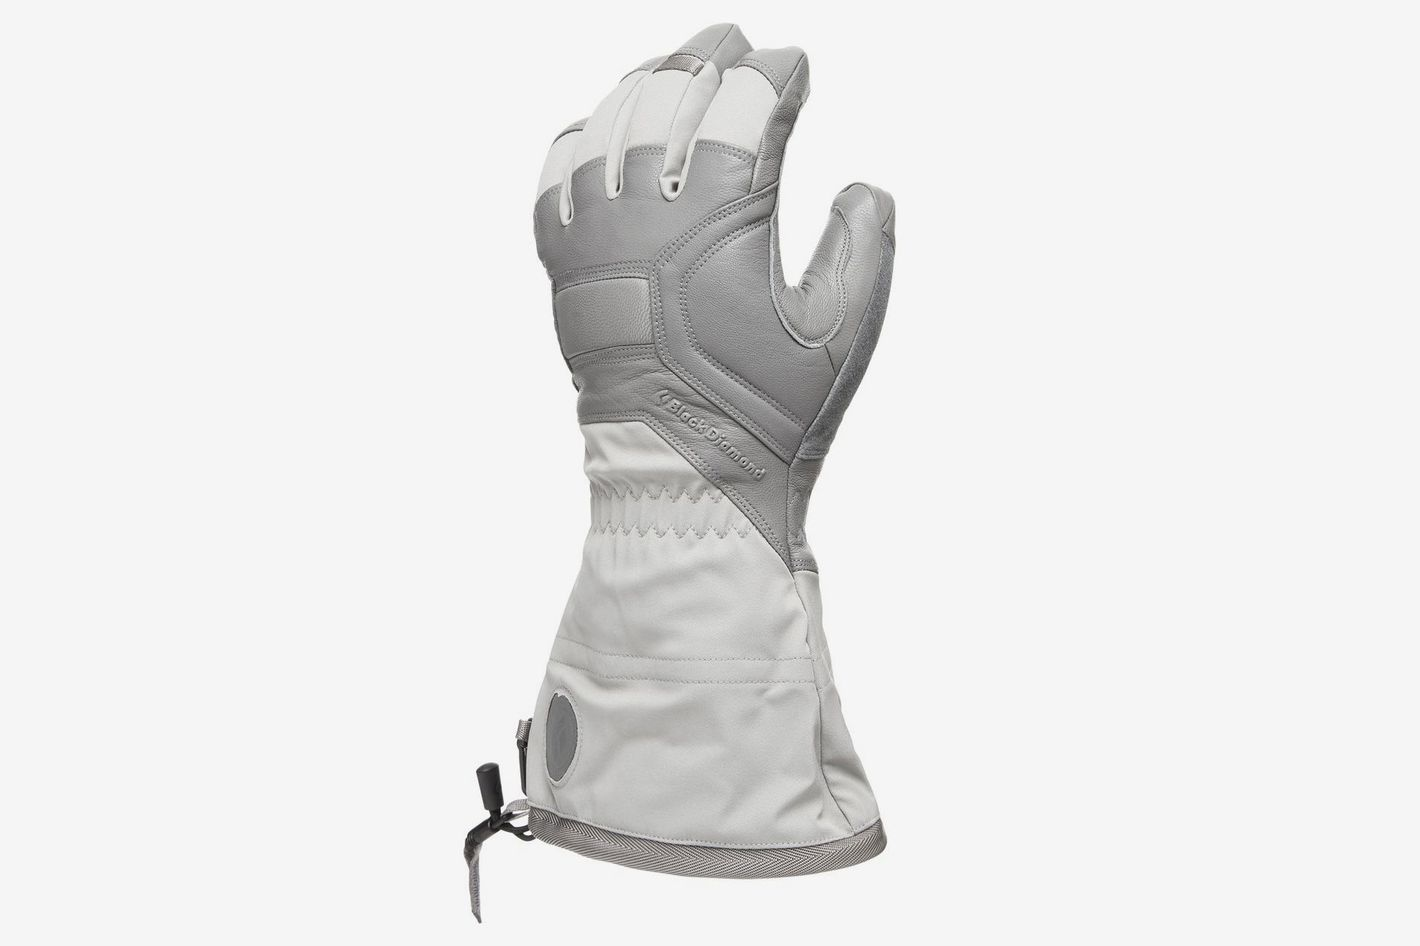 Black Diamond Guide Ski Glove